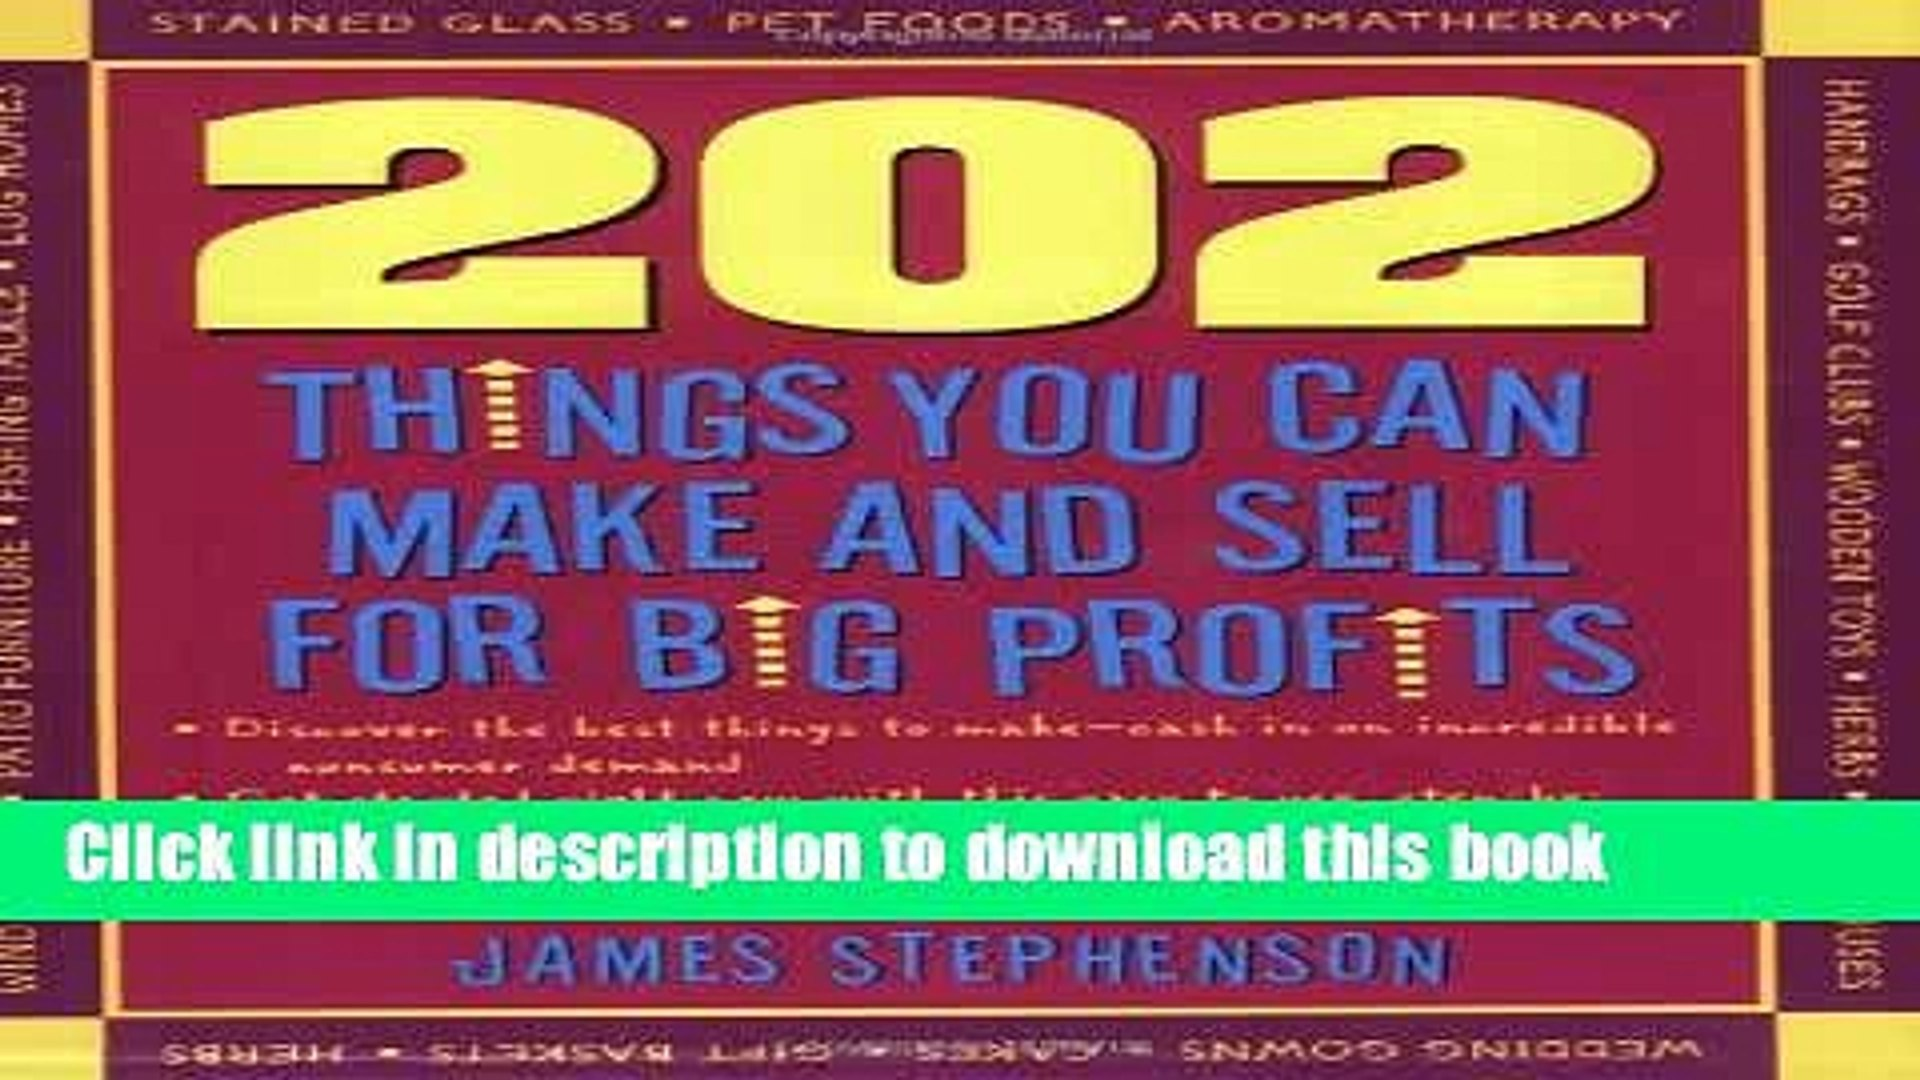 Read 202 Things You Can Make and Sell for Big Profits (202 Things You Can Make   Sell for Big